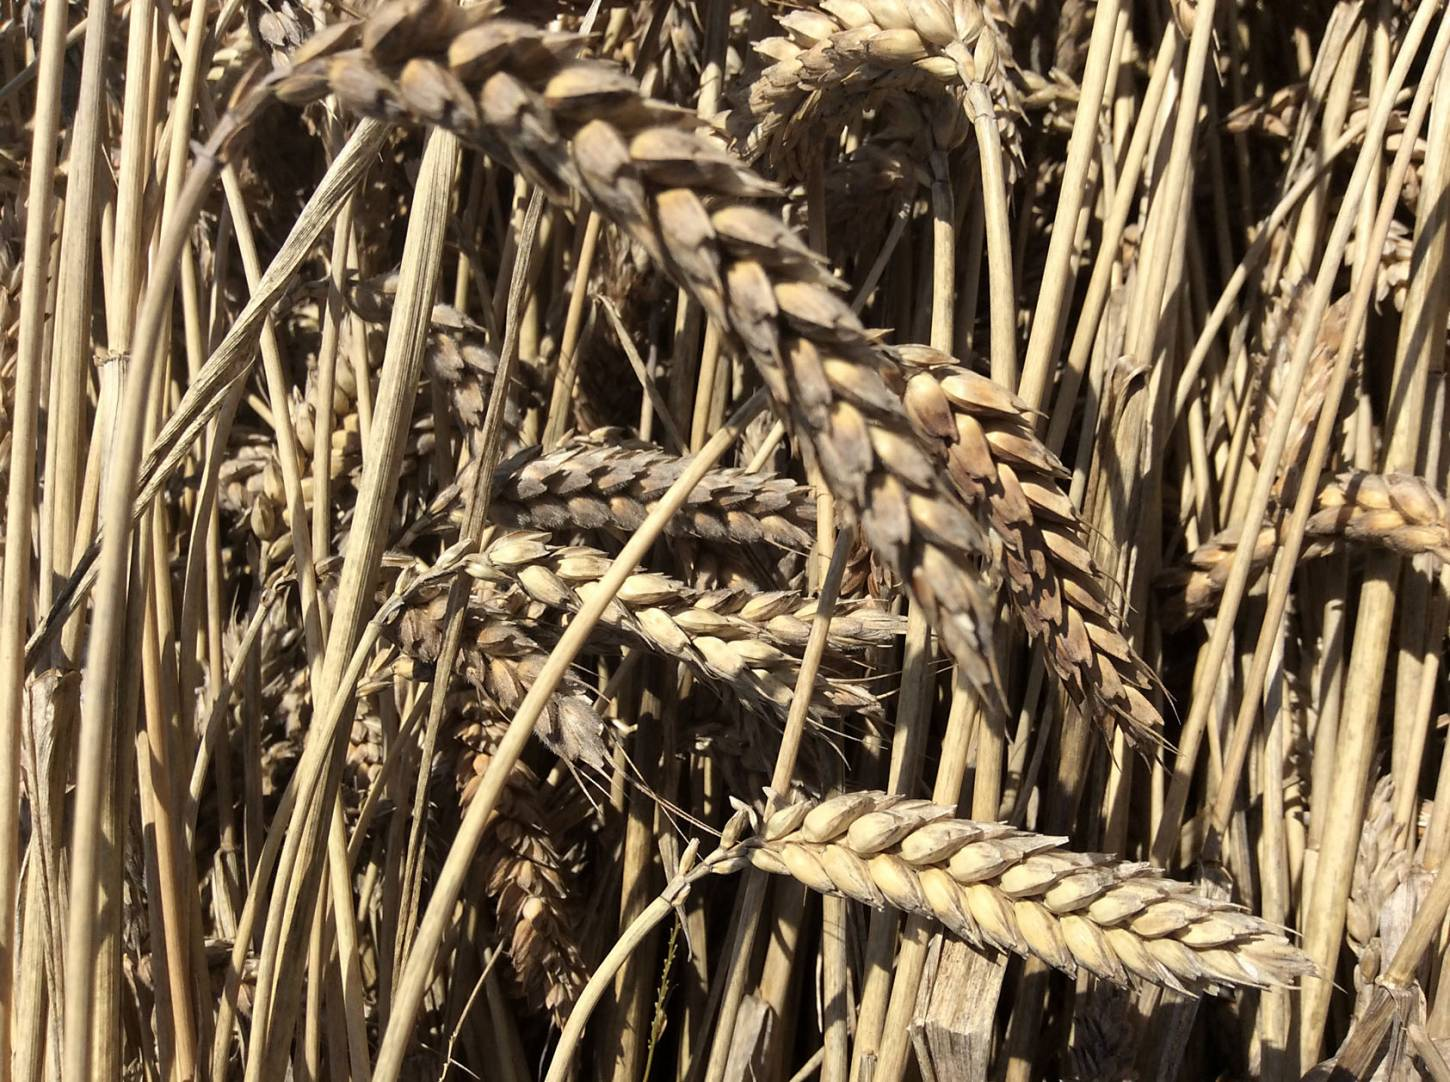 Purple Naked Spelt sheaf, our manual harvest at Lodge Farm, pics = <a href='http://www.annbodkin.co.uk/' target='_blank'>Ann Bodkin</a> - 12:28pm&nbsp;13<sup>th</sup>&nbsp;Aug.&nbsp;'17